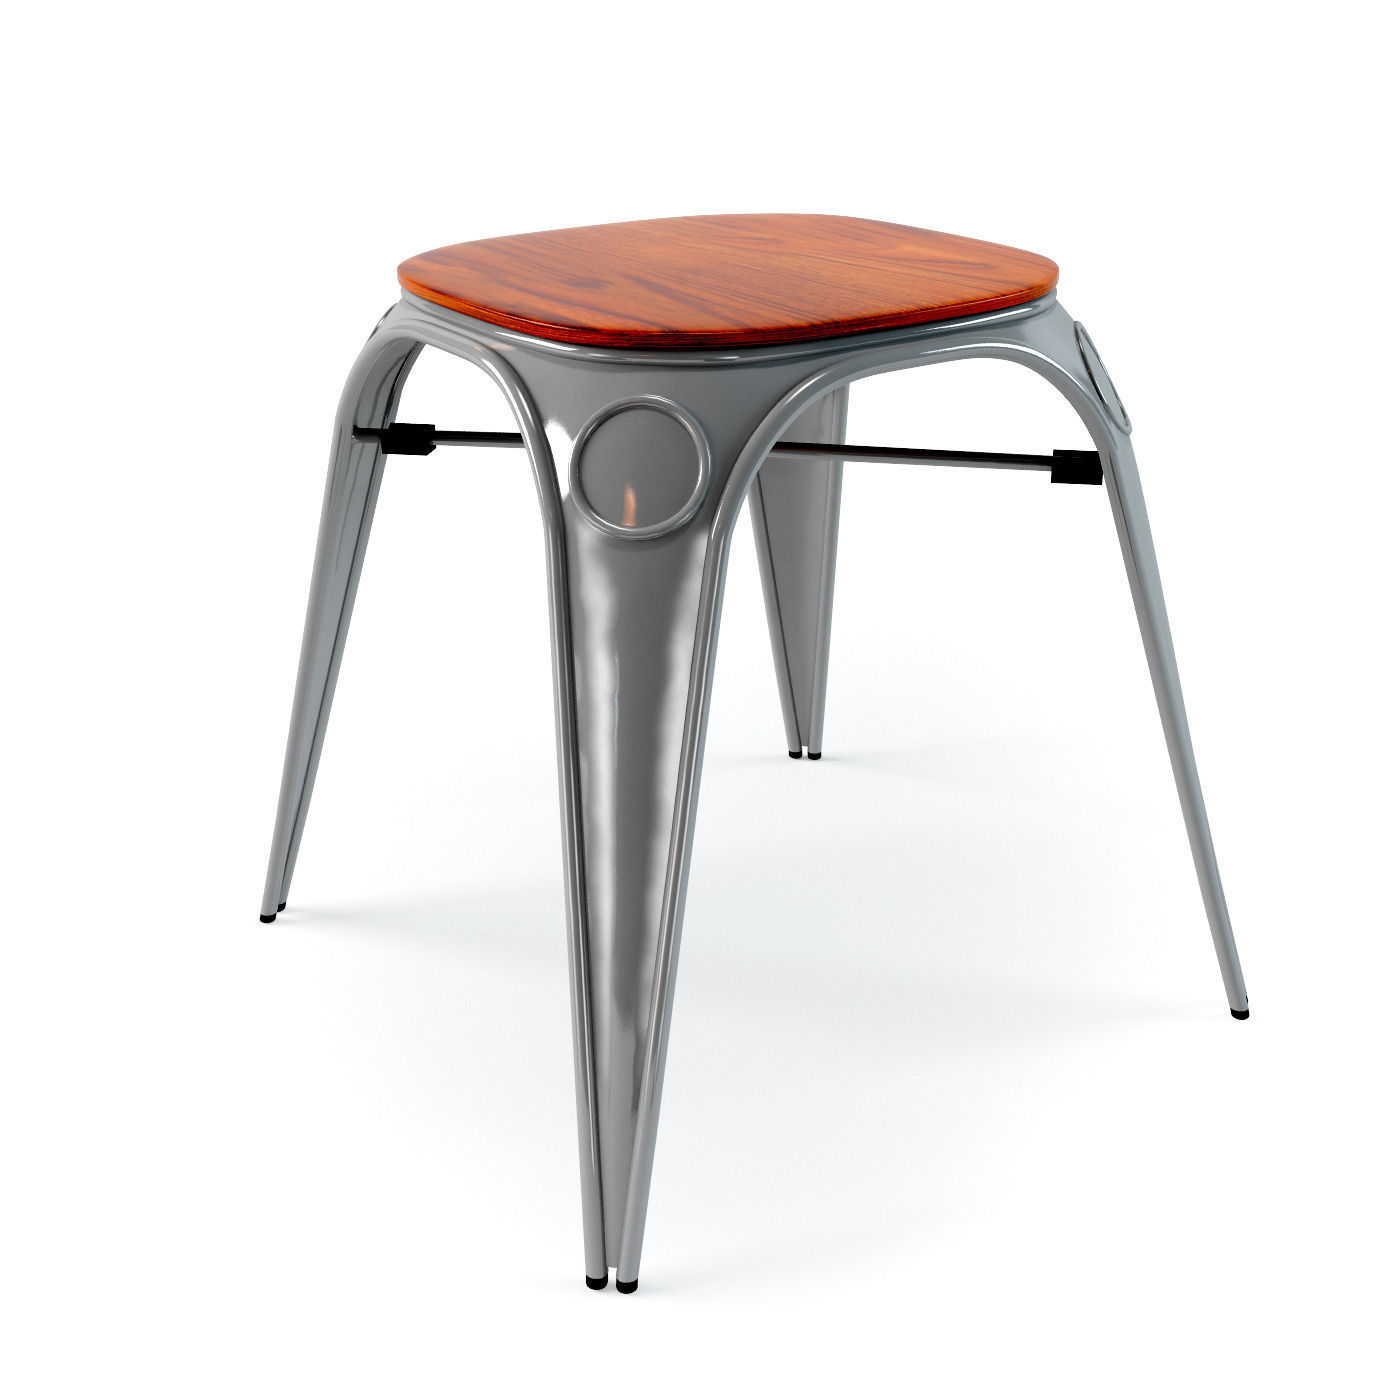 Louix chair High and stool 3D